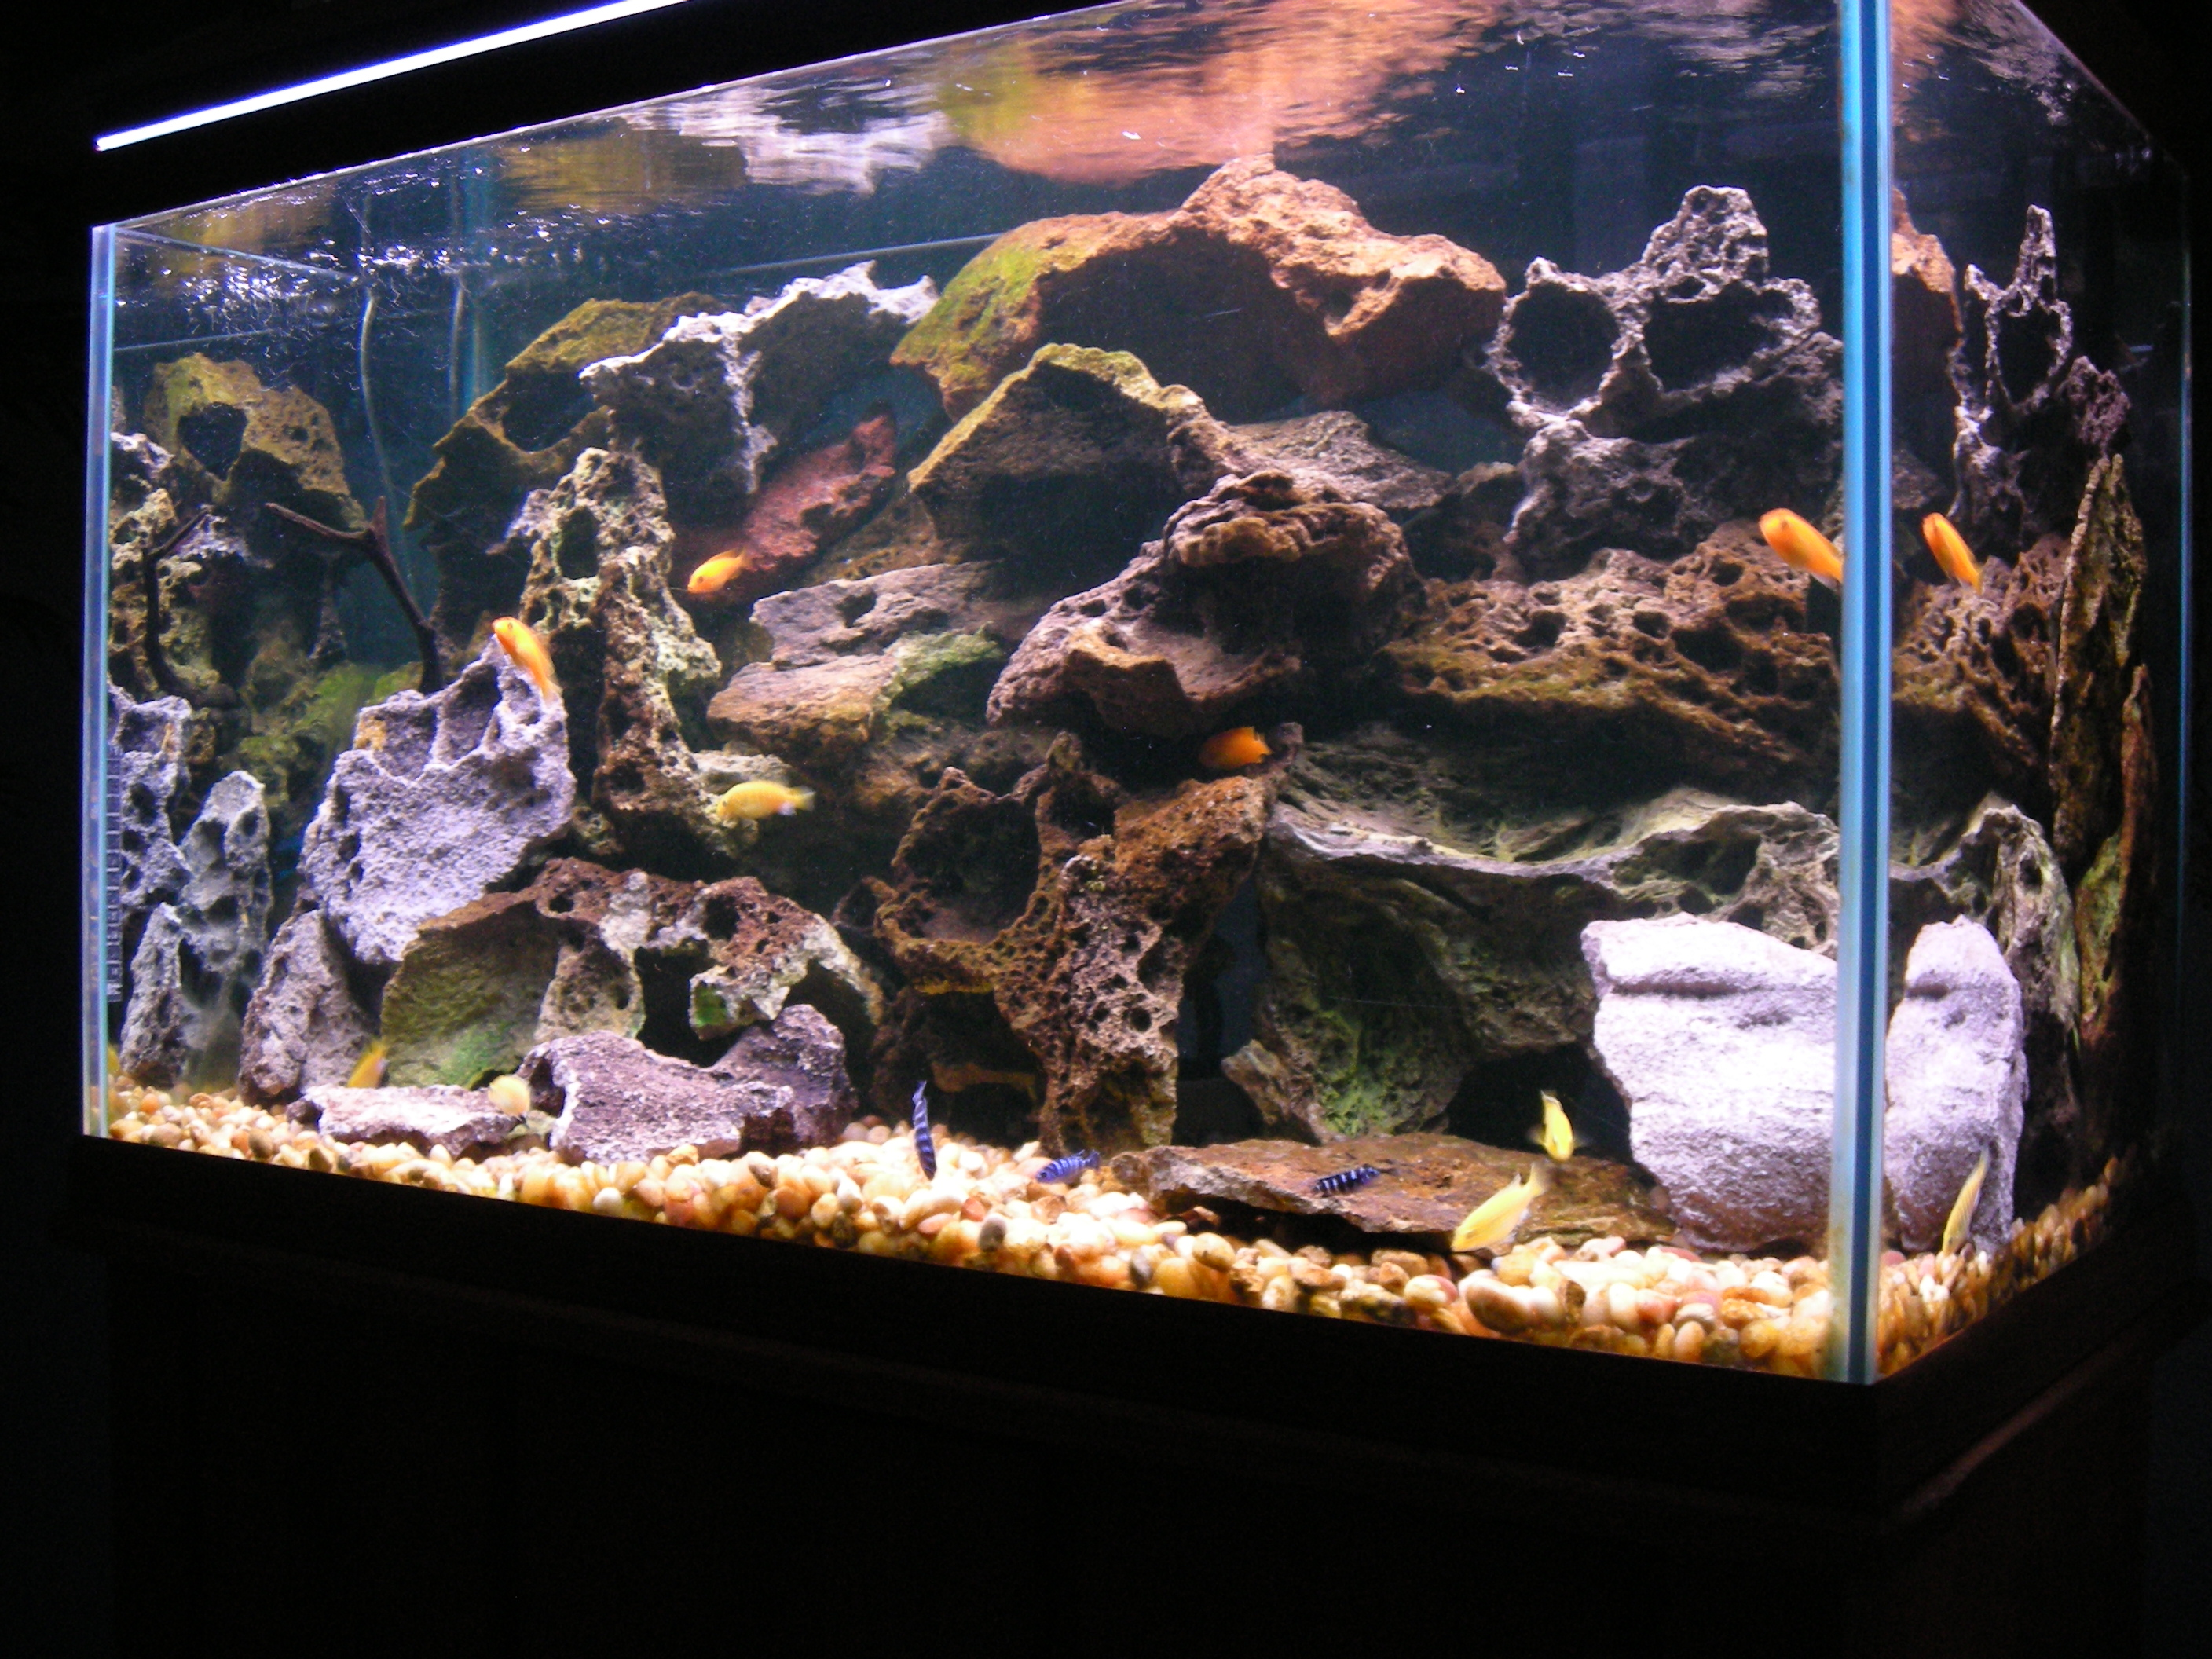 Tank examples 58 gallon lake malawi tank for African cichlid tank decoration